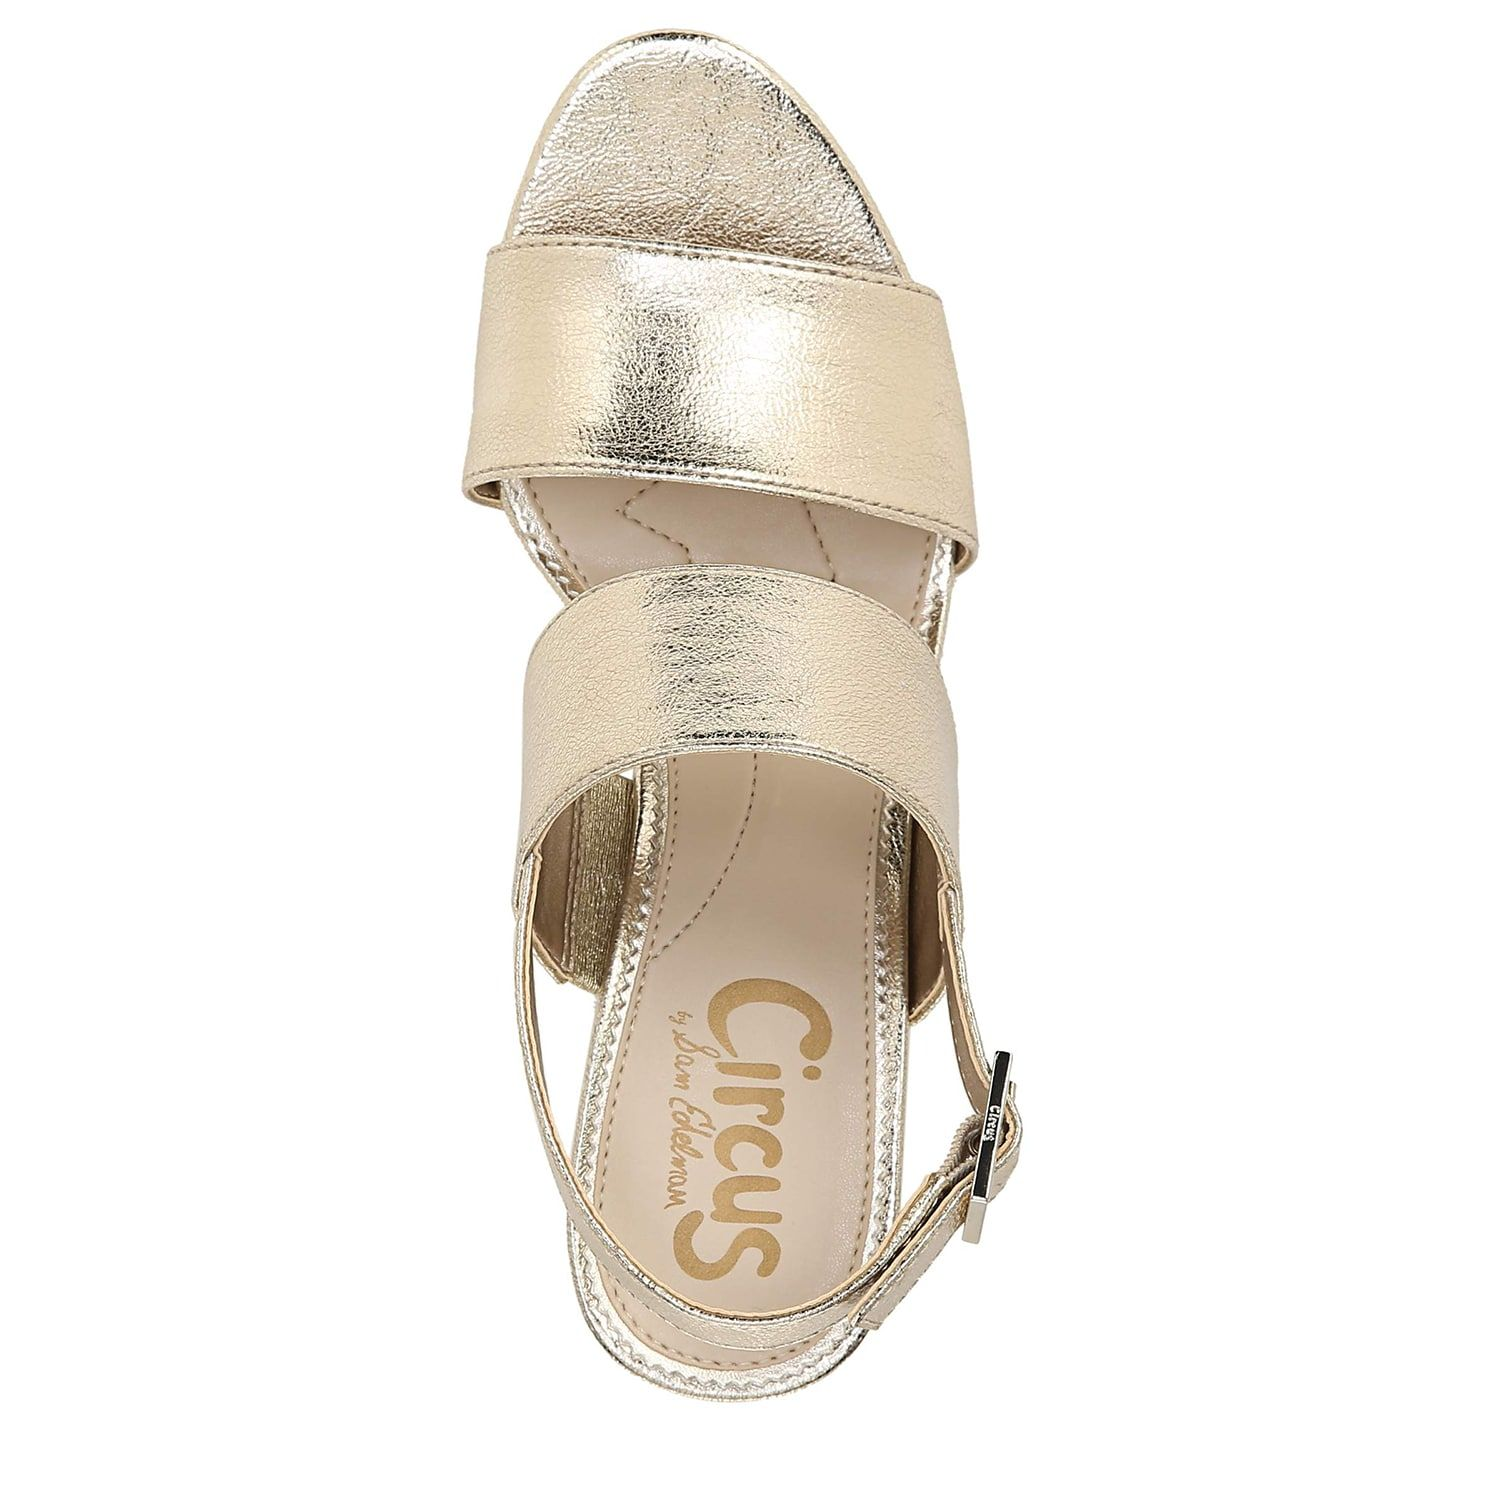 be91297001 Circus by Sam Edelman Olivia Women's Pumps #Edelman, #Sam, #Circus, #Pumps